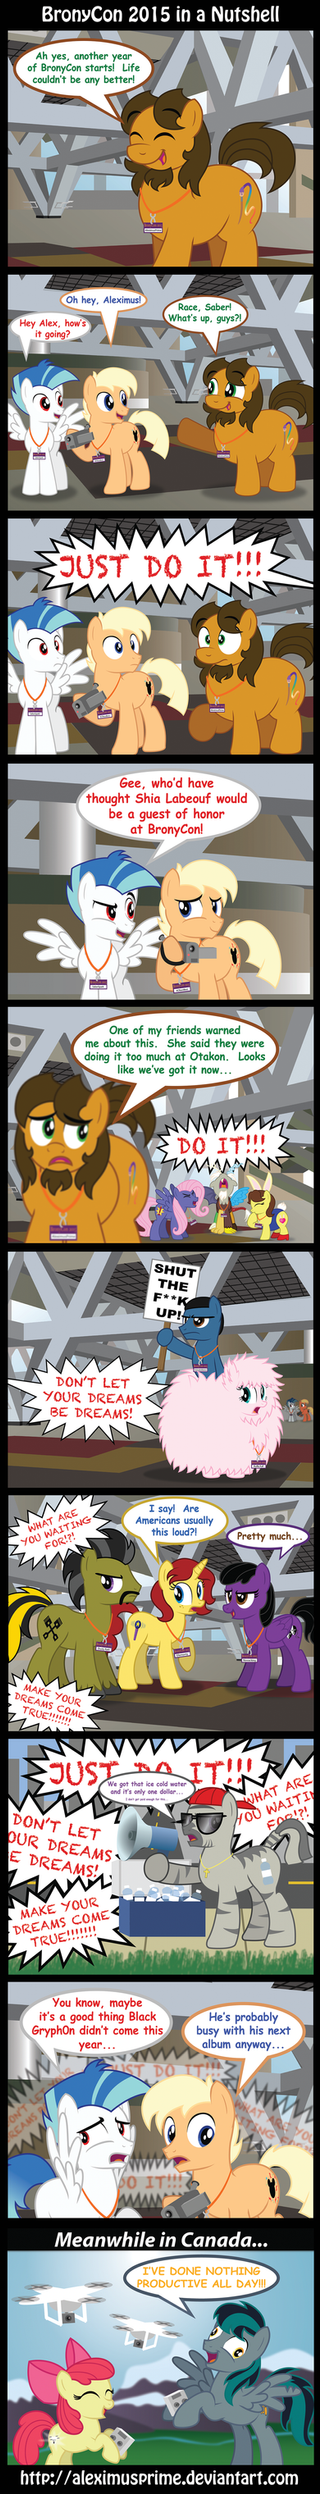 BronyCon 2015 in a Nutshell by AleximusPrime